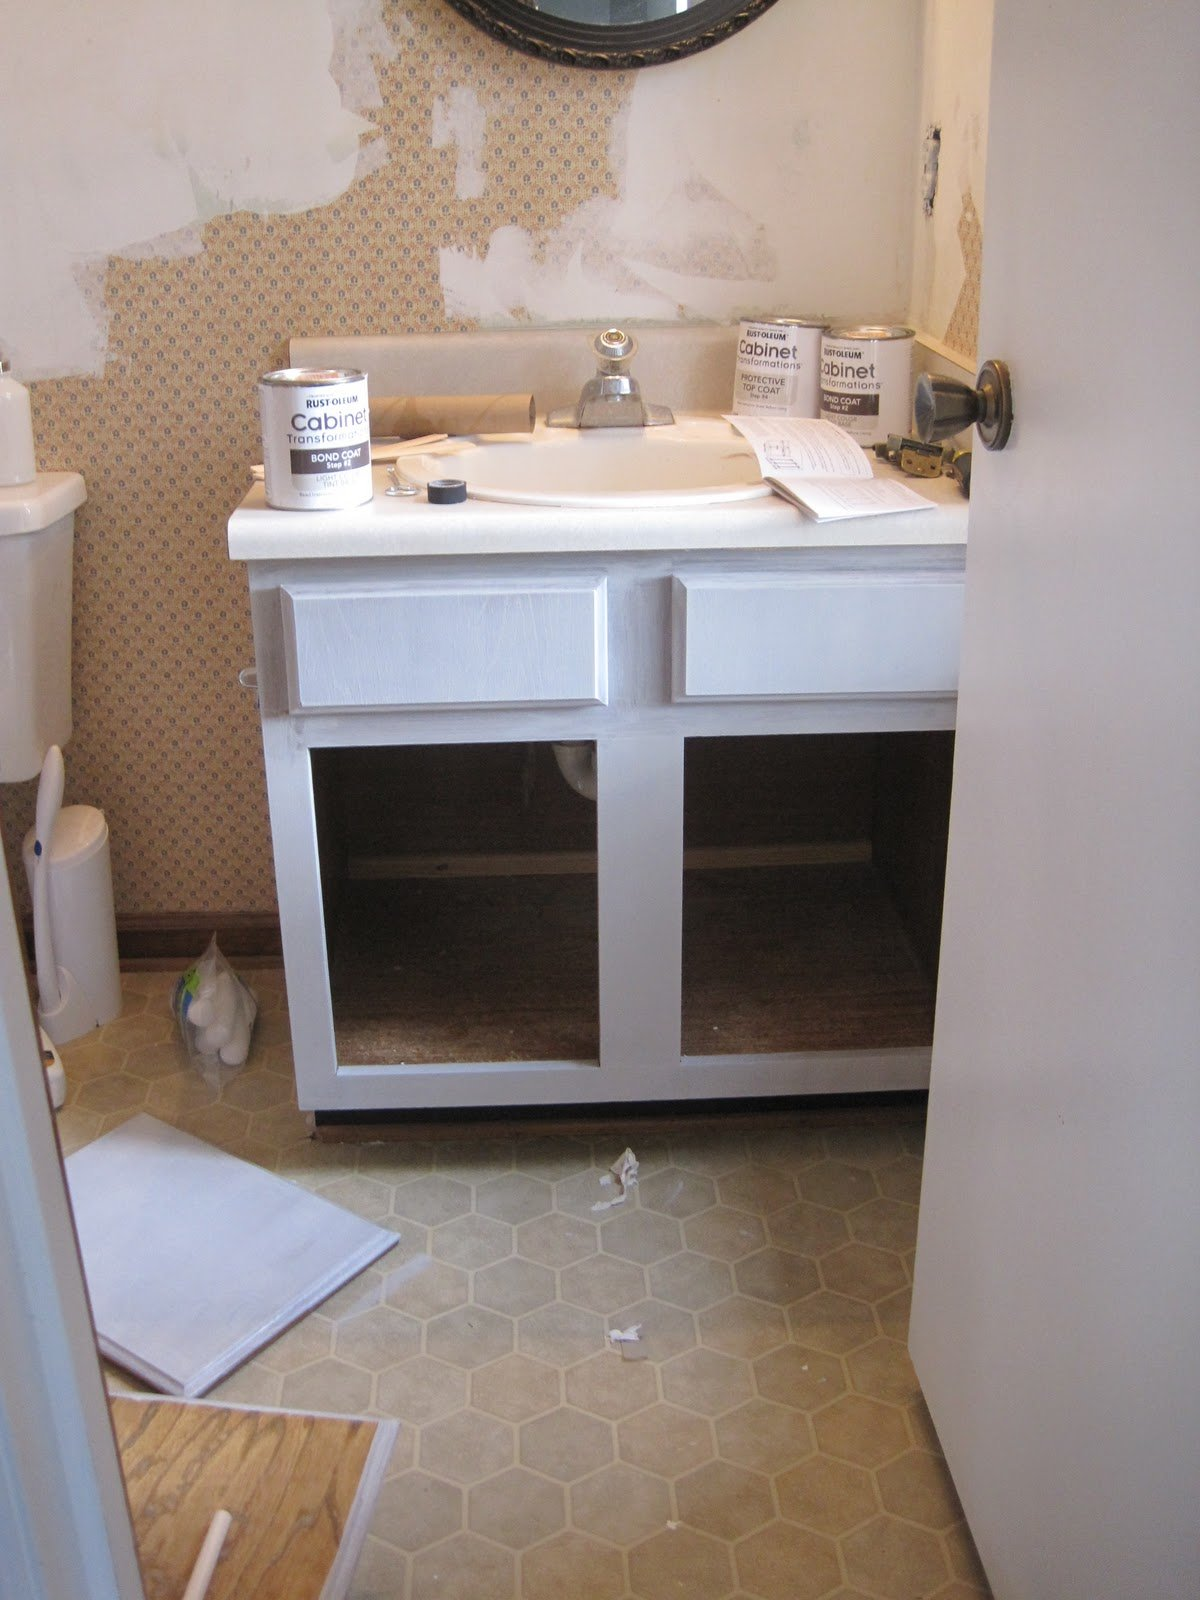 Painted Bathroom Cabinet Sneak Peek